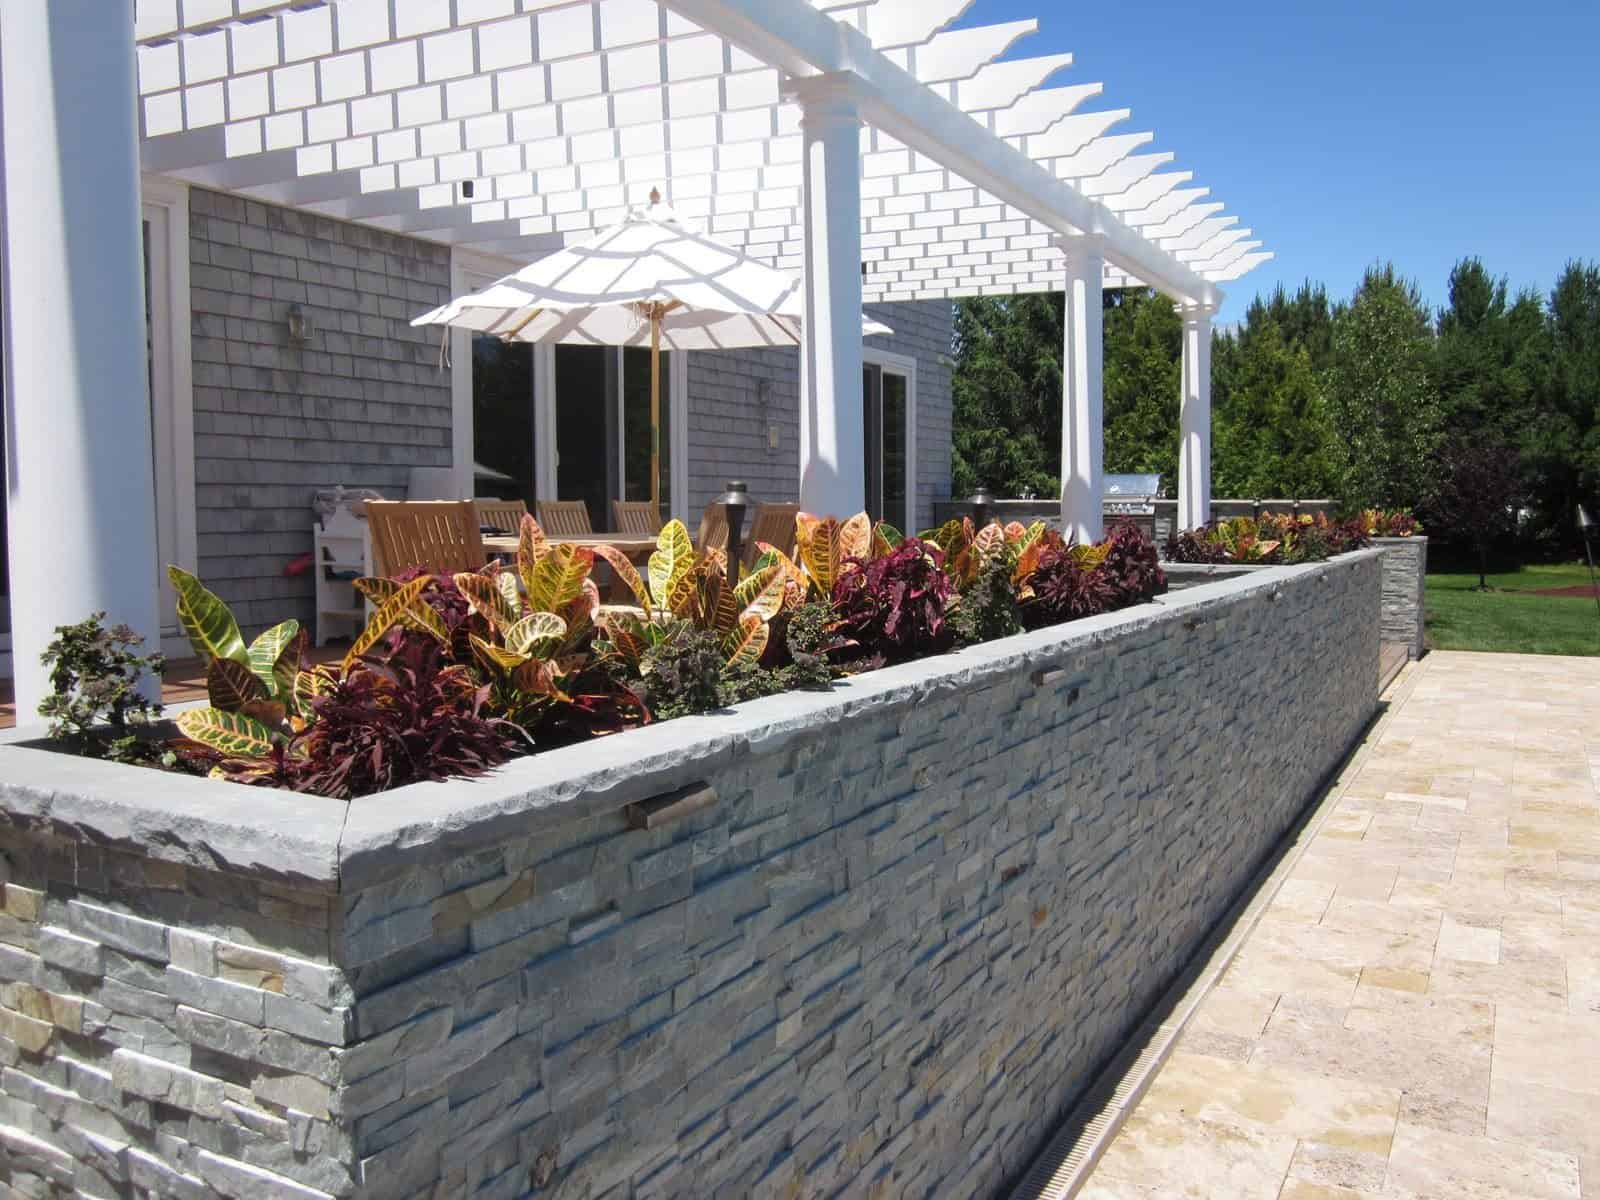 Custom Planters veneered with East West Stone - Bayside Waters - with Rockfaced Bluestone Cap planted with Coleus and Croton - Southampton, Long Island NY